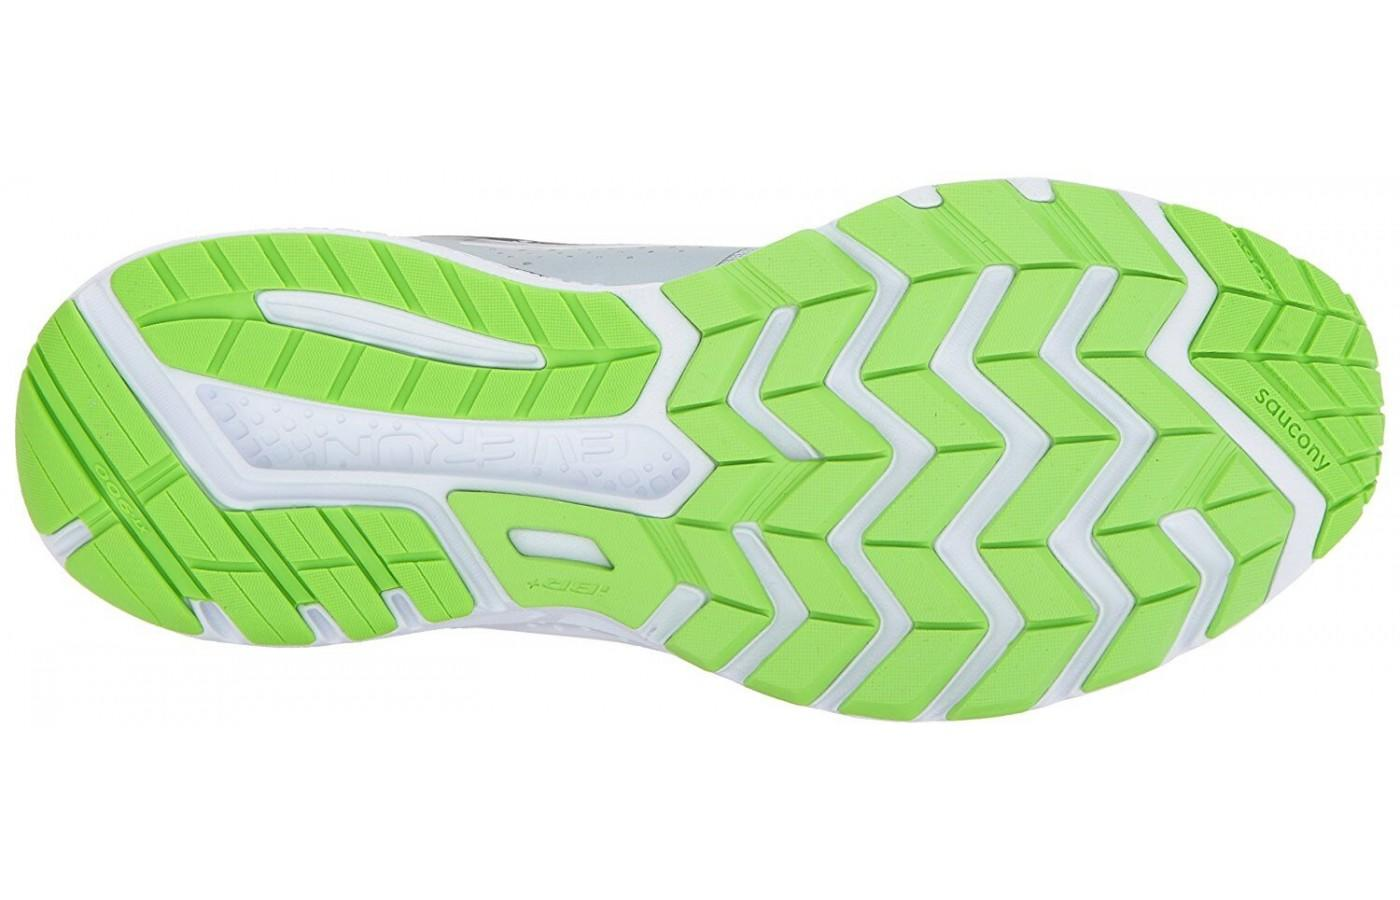 86ebe88837a0 ... the outsole provides solid traction on the road  the saucony ride 10 ...